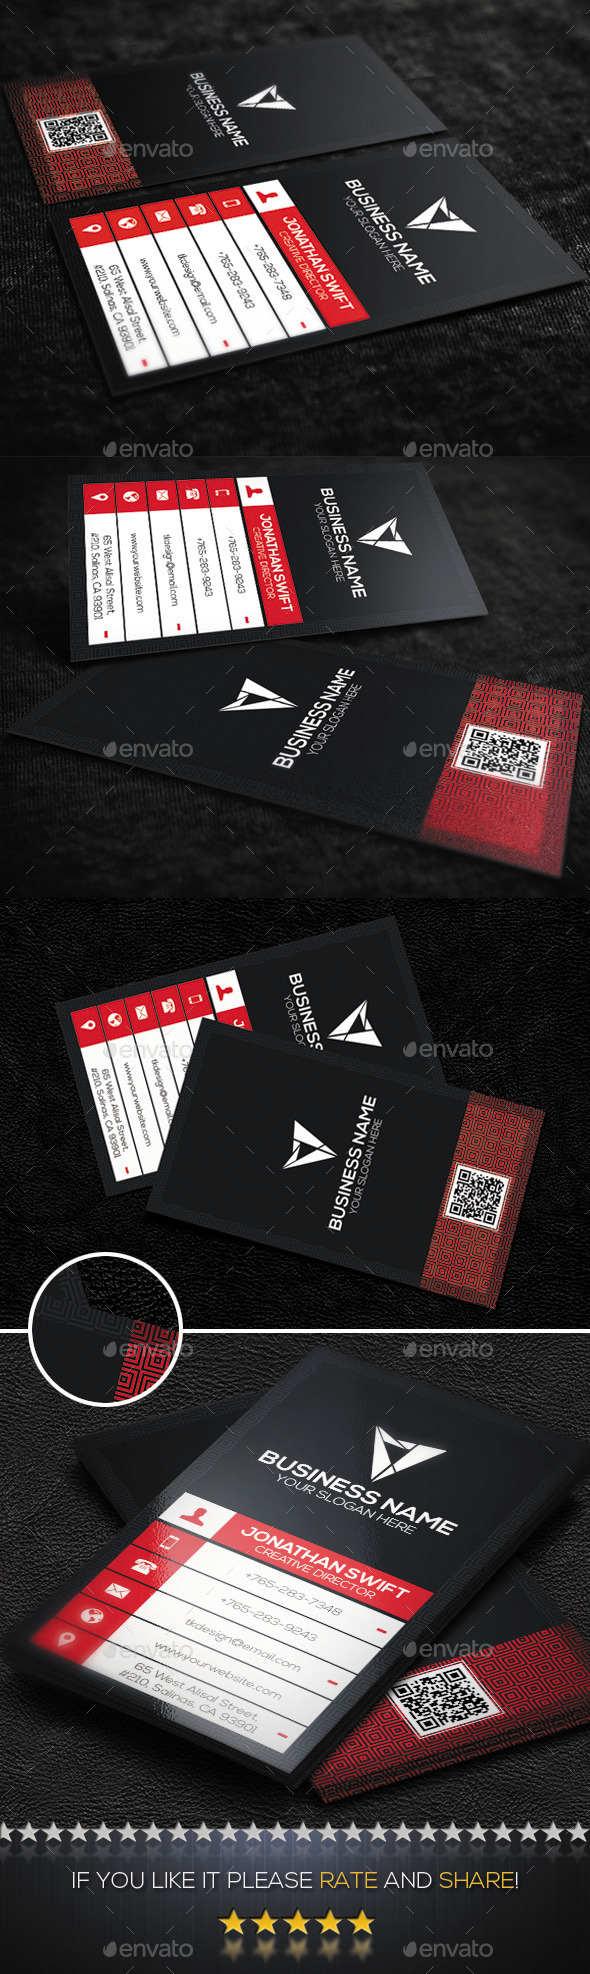 GraphicRiver Corporate Business Card No.04 9237047